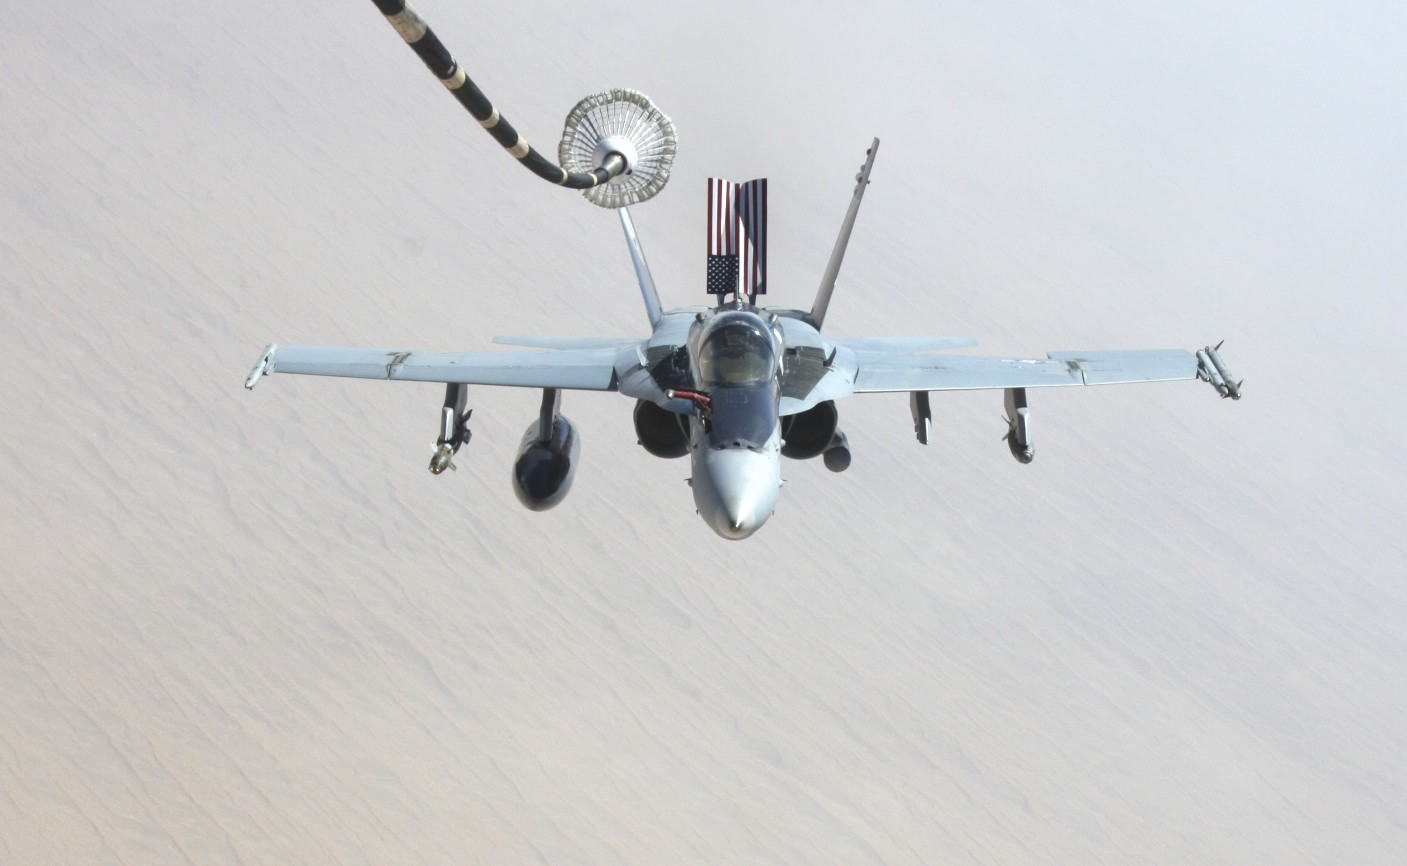 Pull A F/A-18C Hornet For A Good Cause